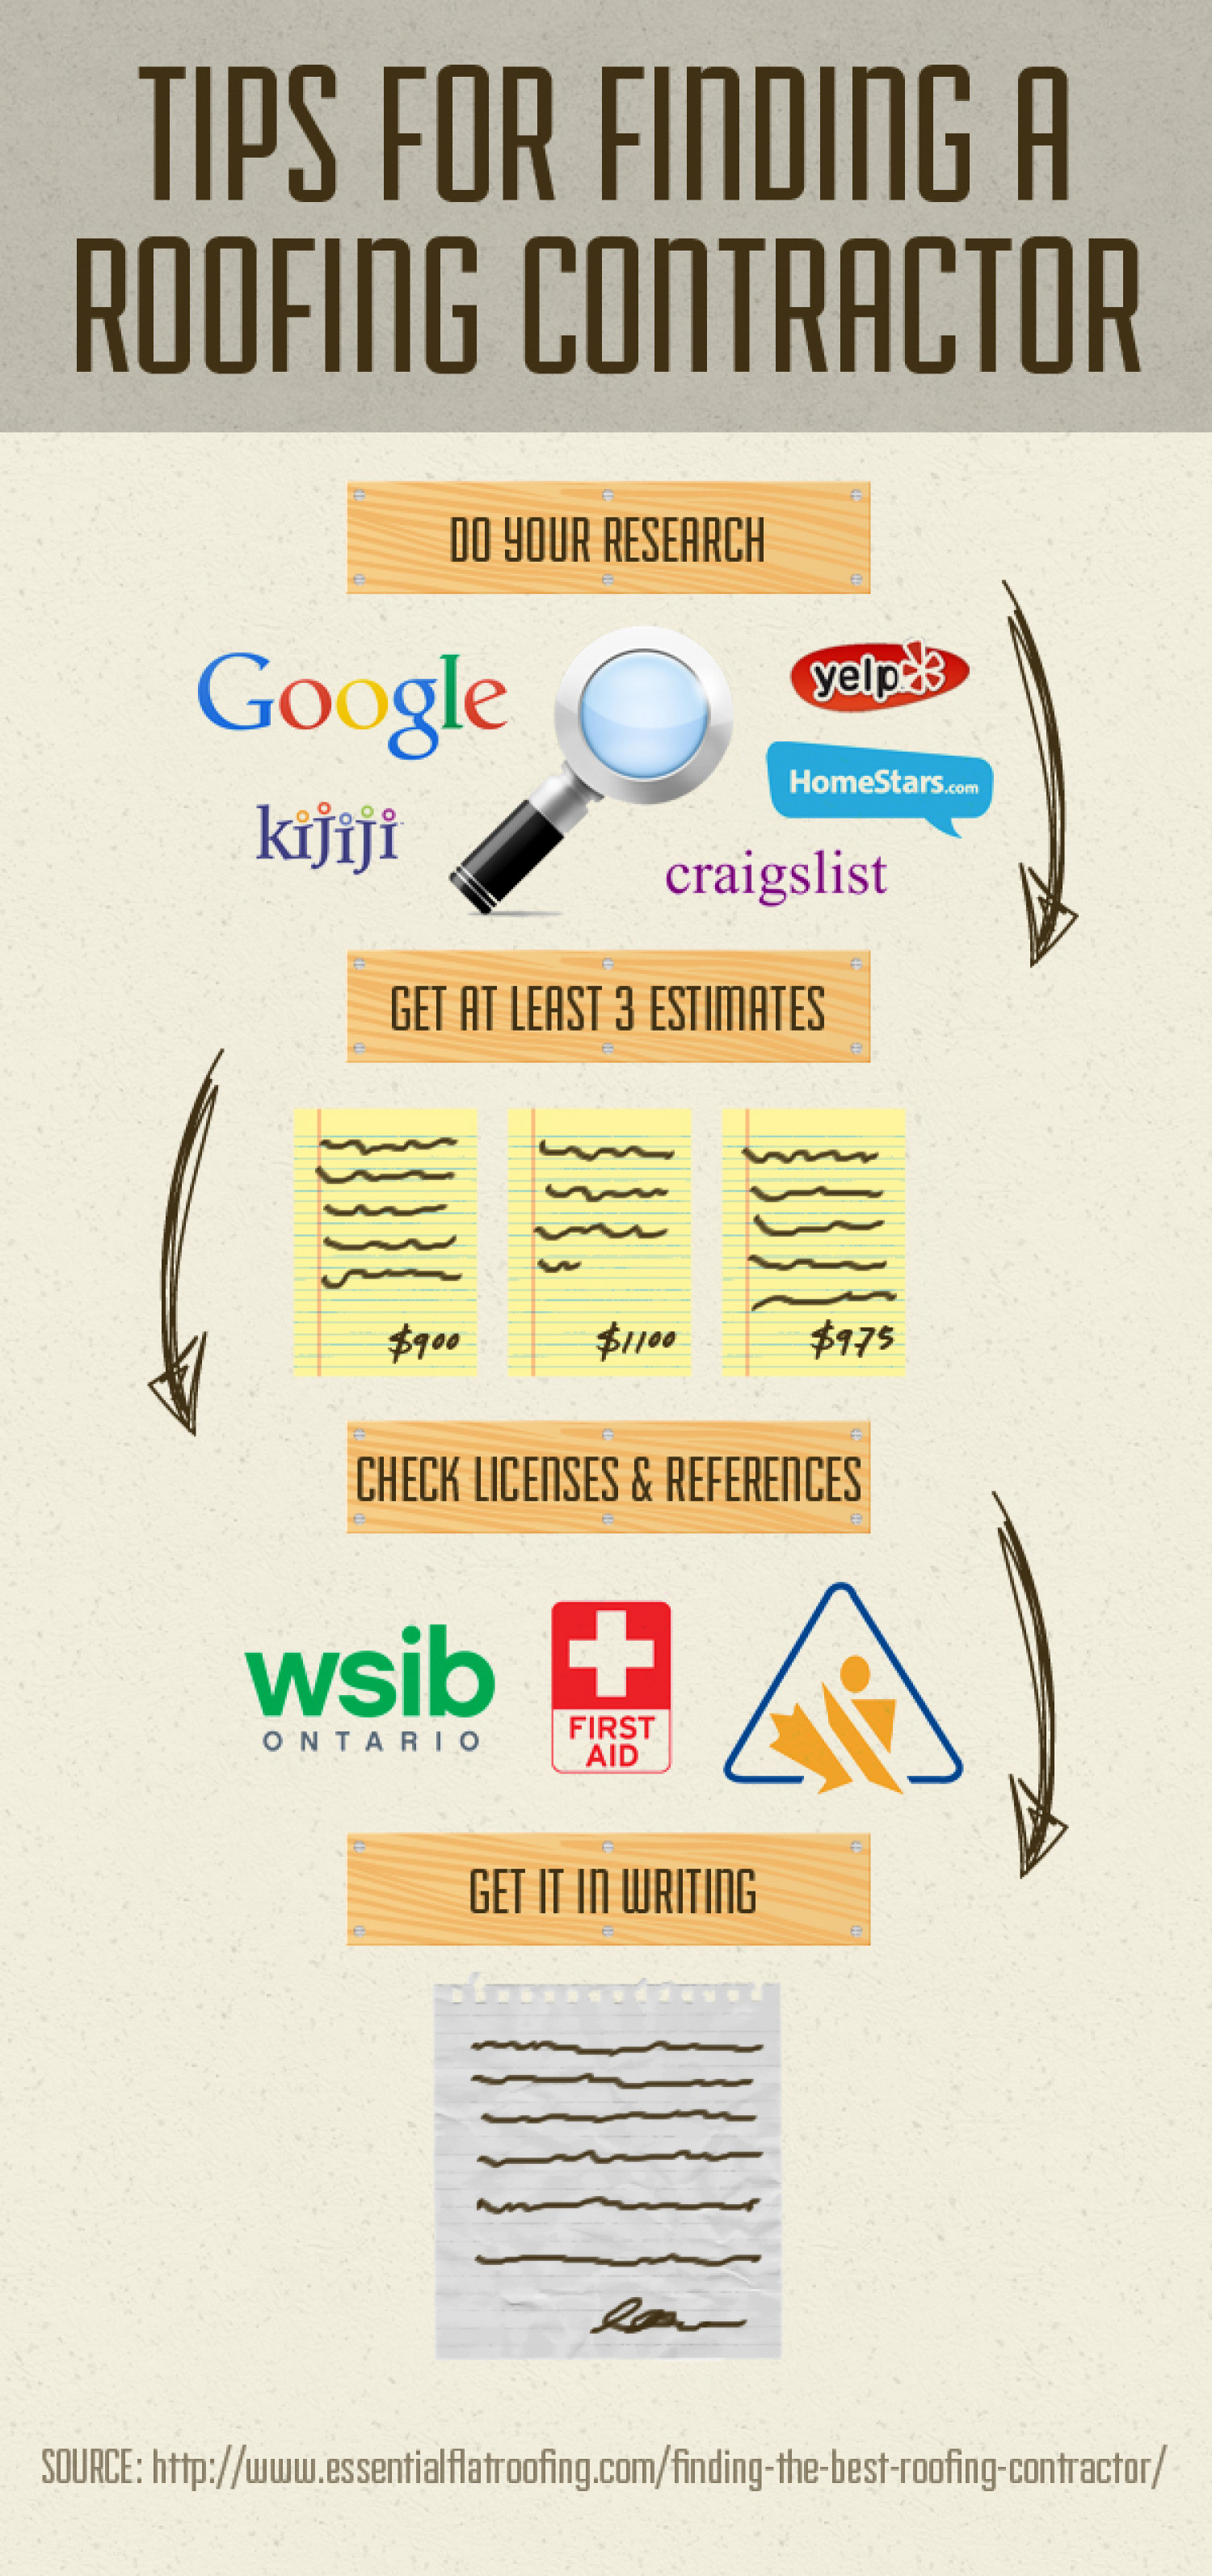 Tips For Finding a Roofing Contractor Infographic